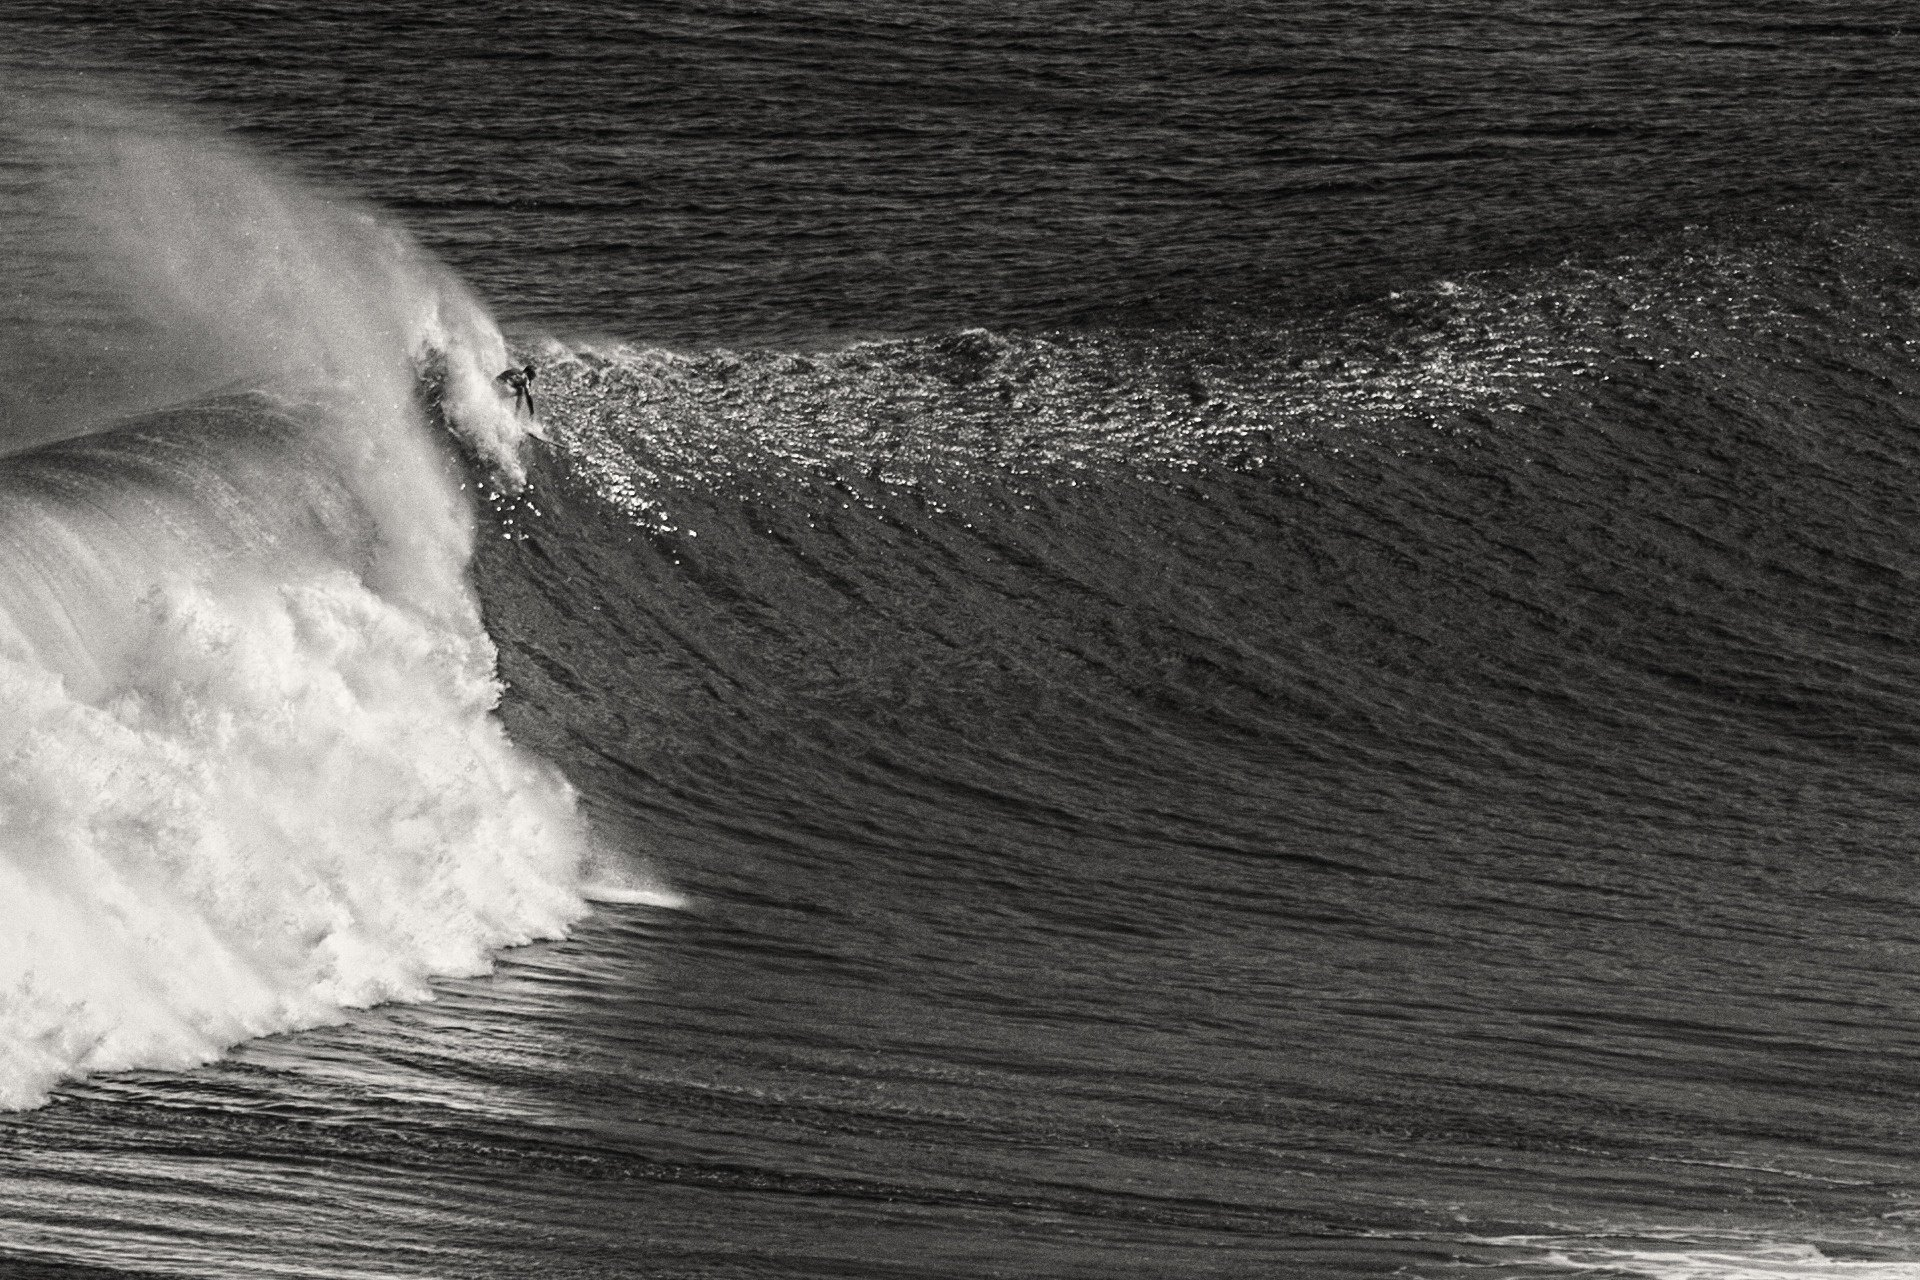 Duane Moore's photo of Uluwatu